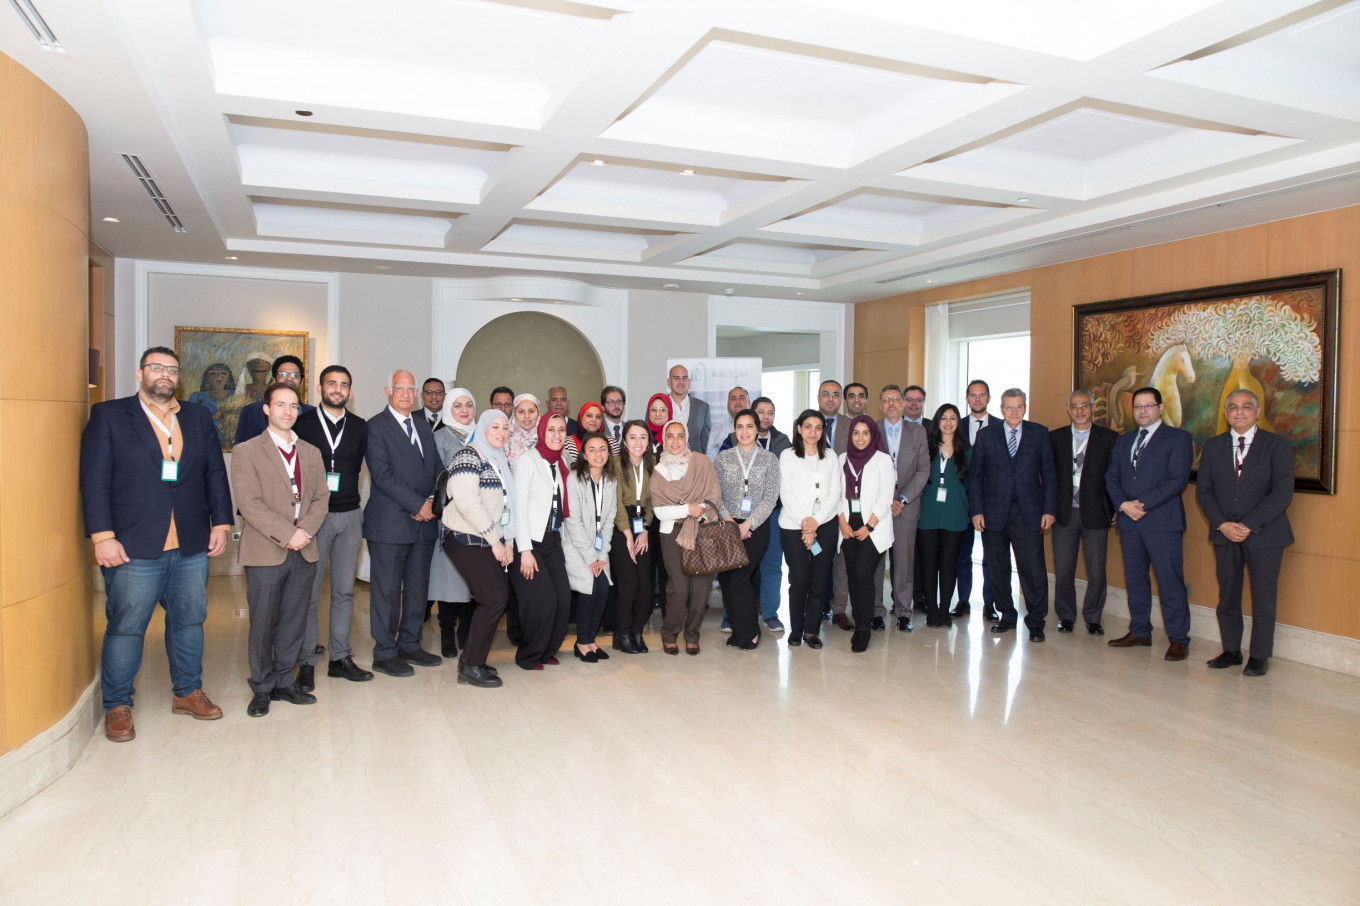 Some of the attendees of the national kick-off workshop in Cairo, Egypt that took place on the 3 March 2020 © IDG